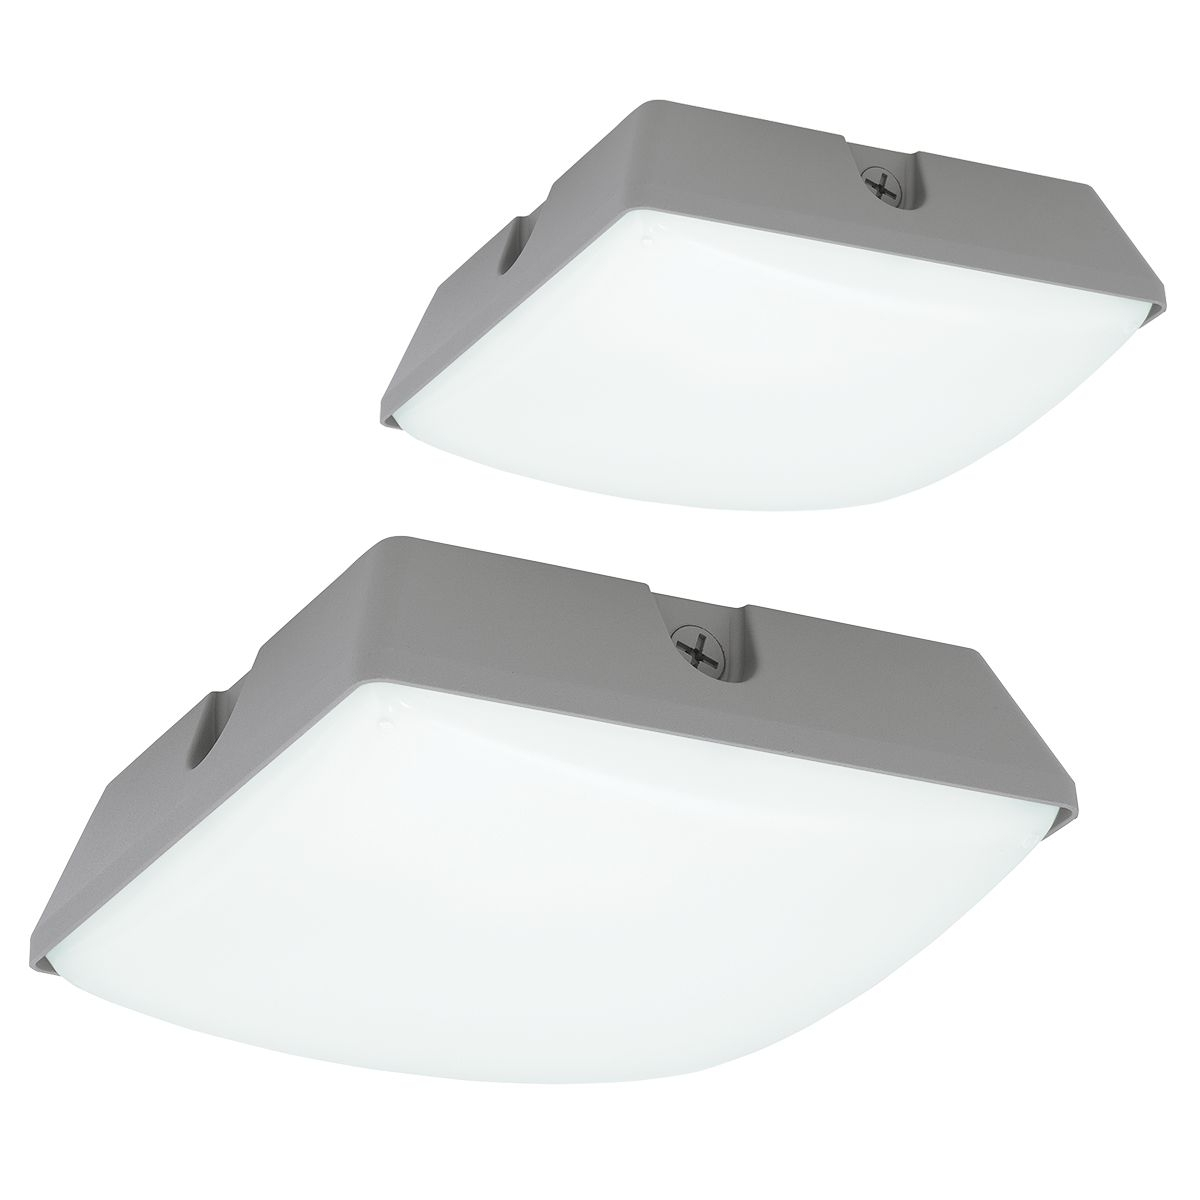 Commercial Outdoor Ceiling Lights Within Most Up To Date Lsq Lumasquare Series (View 2 of 20)